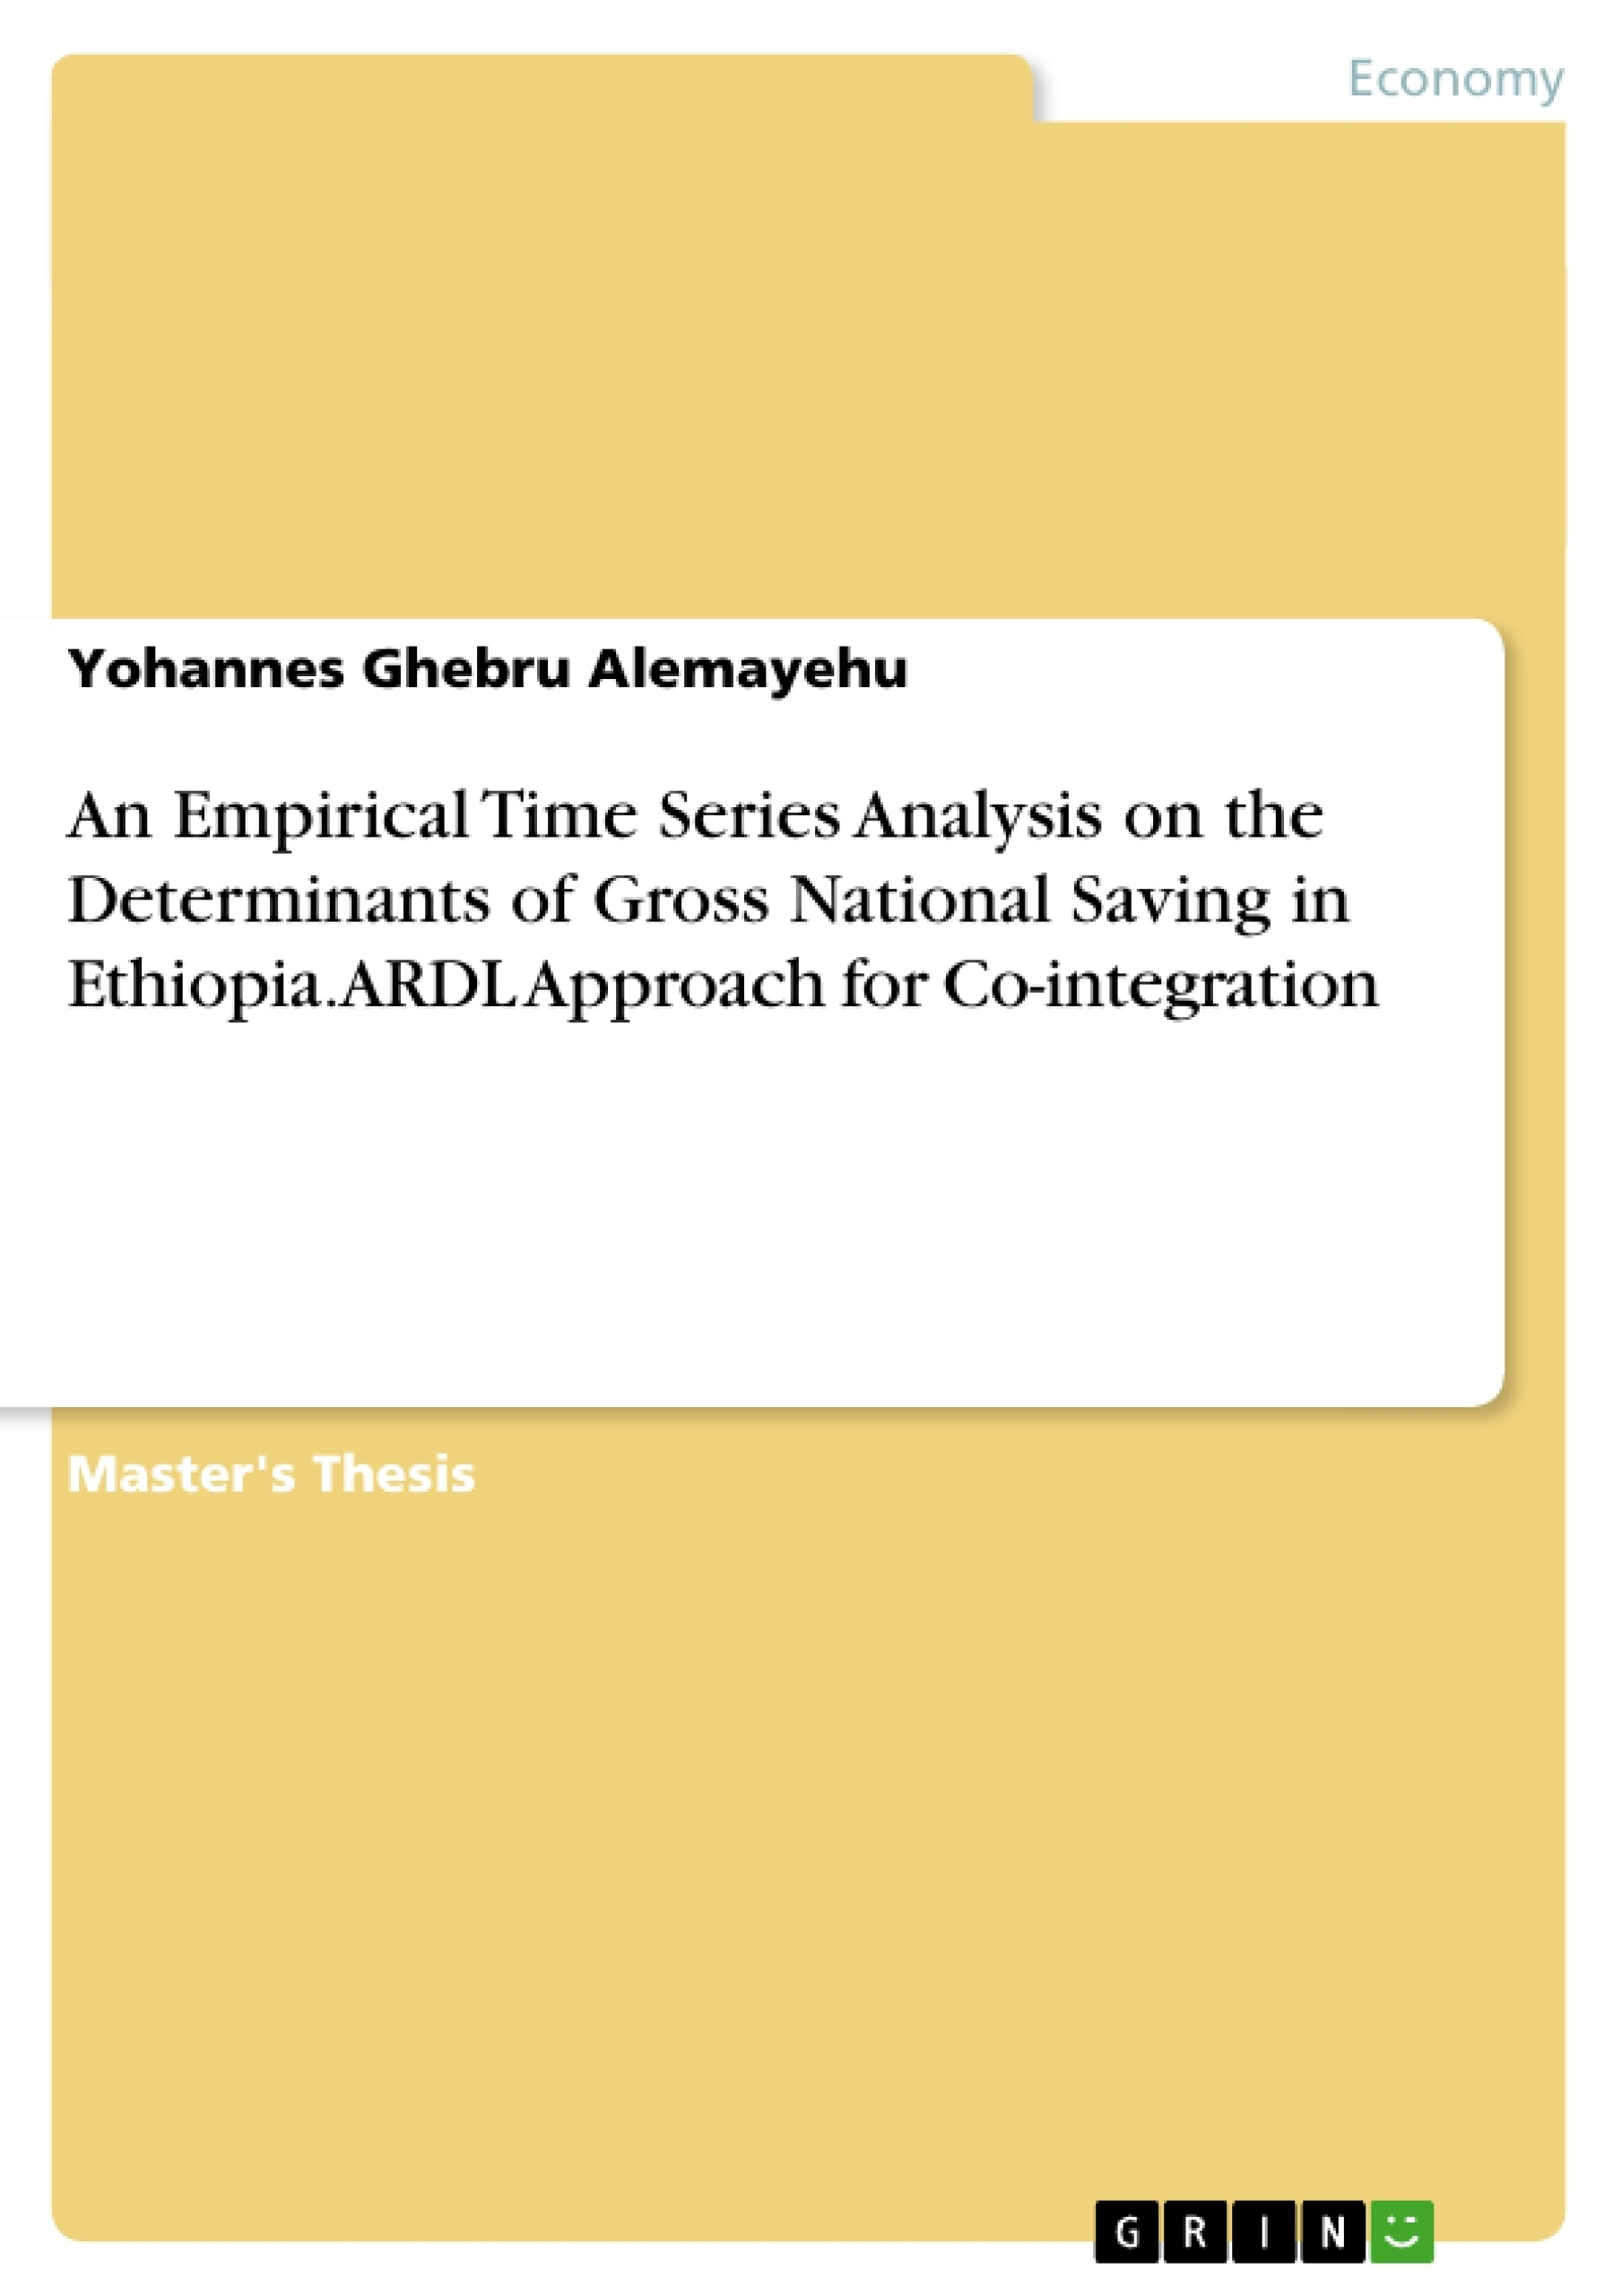 Title: An Empirical Time Series Analysis on the Determinants of Gross National Saving in Ethiopia. ARDL Approach for Co-integration